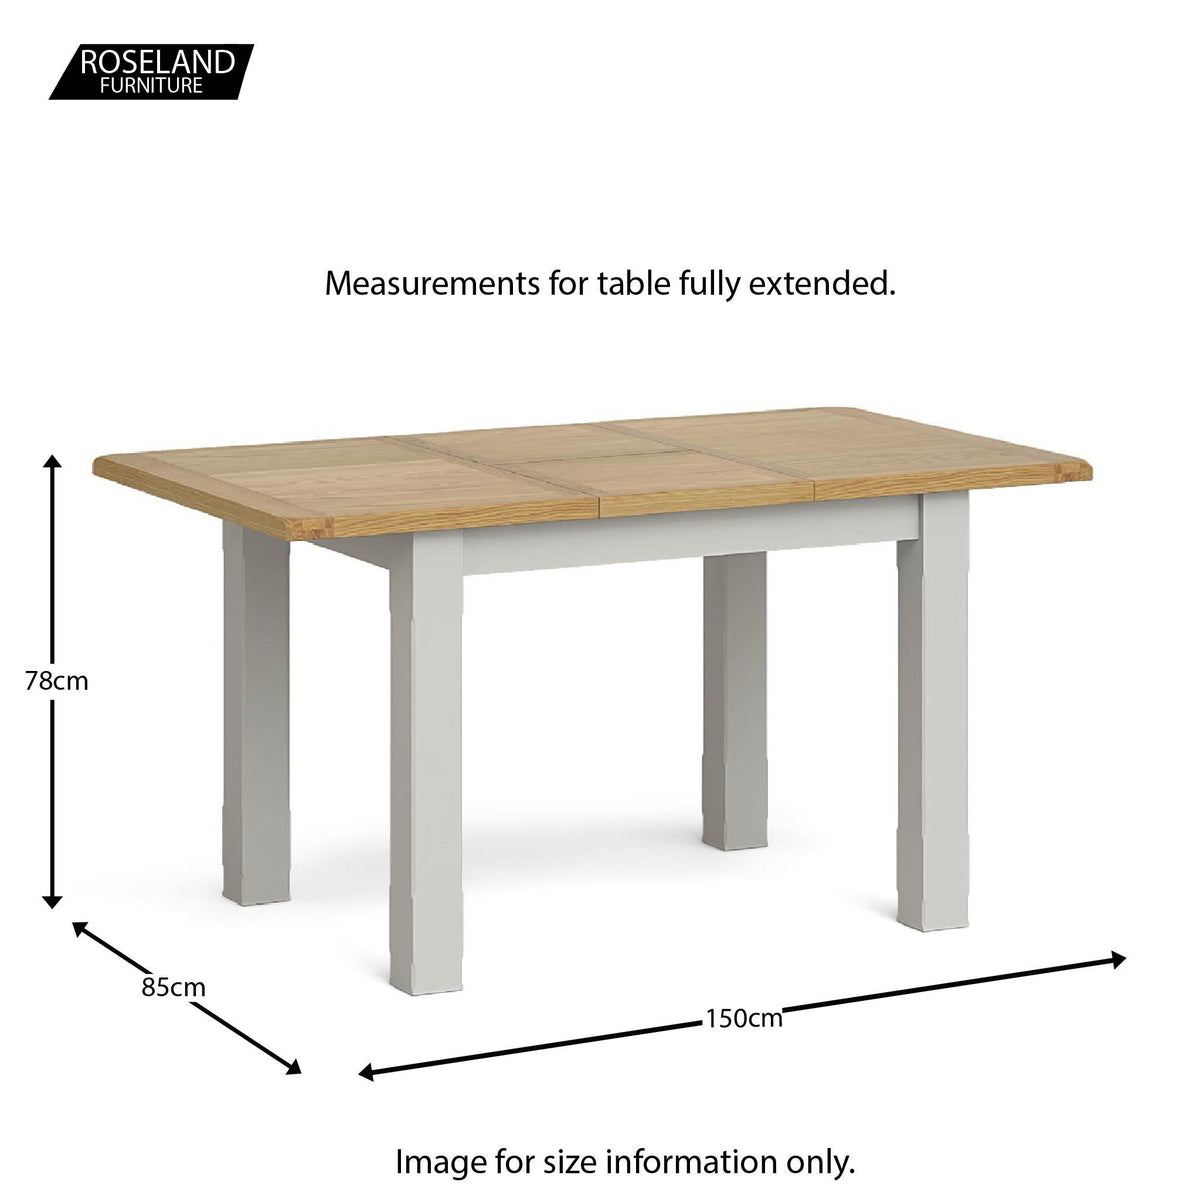 Lundy Grey Compact Extending Dining Table - Extended size guide